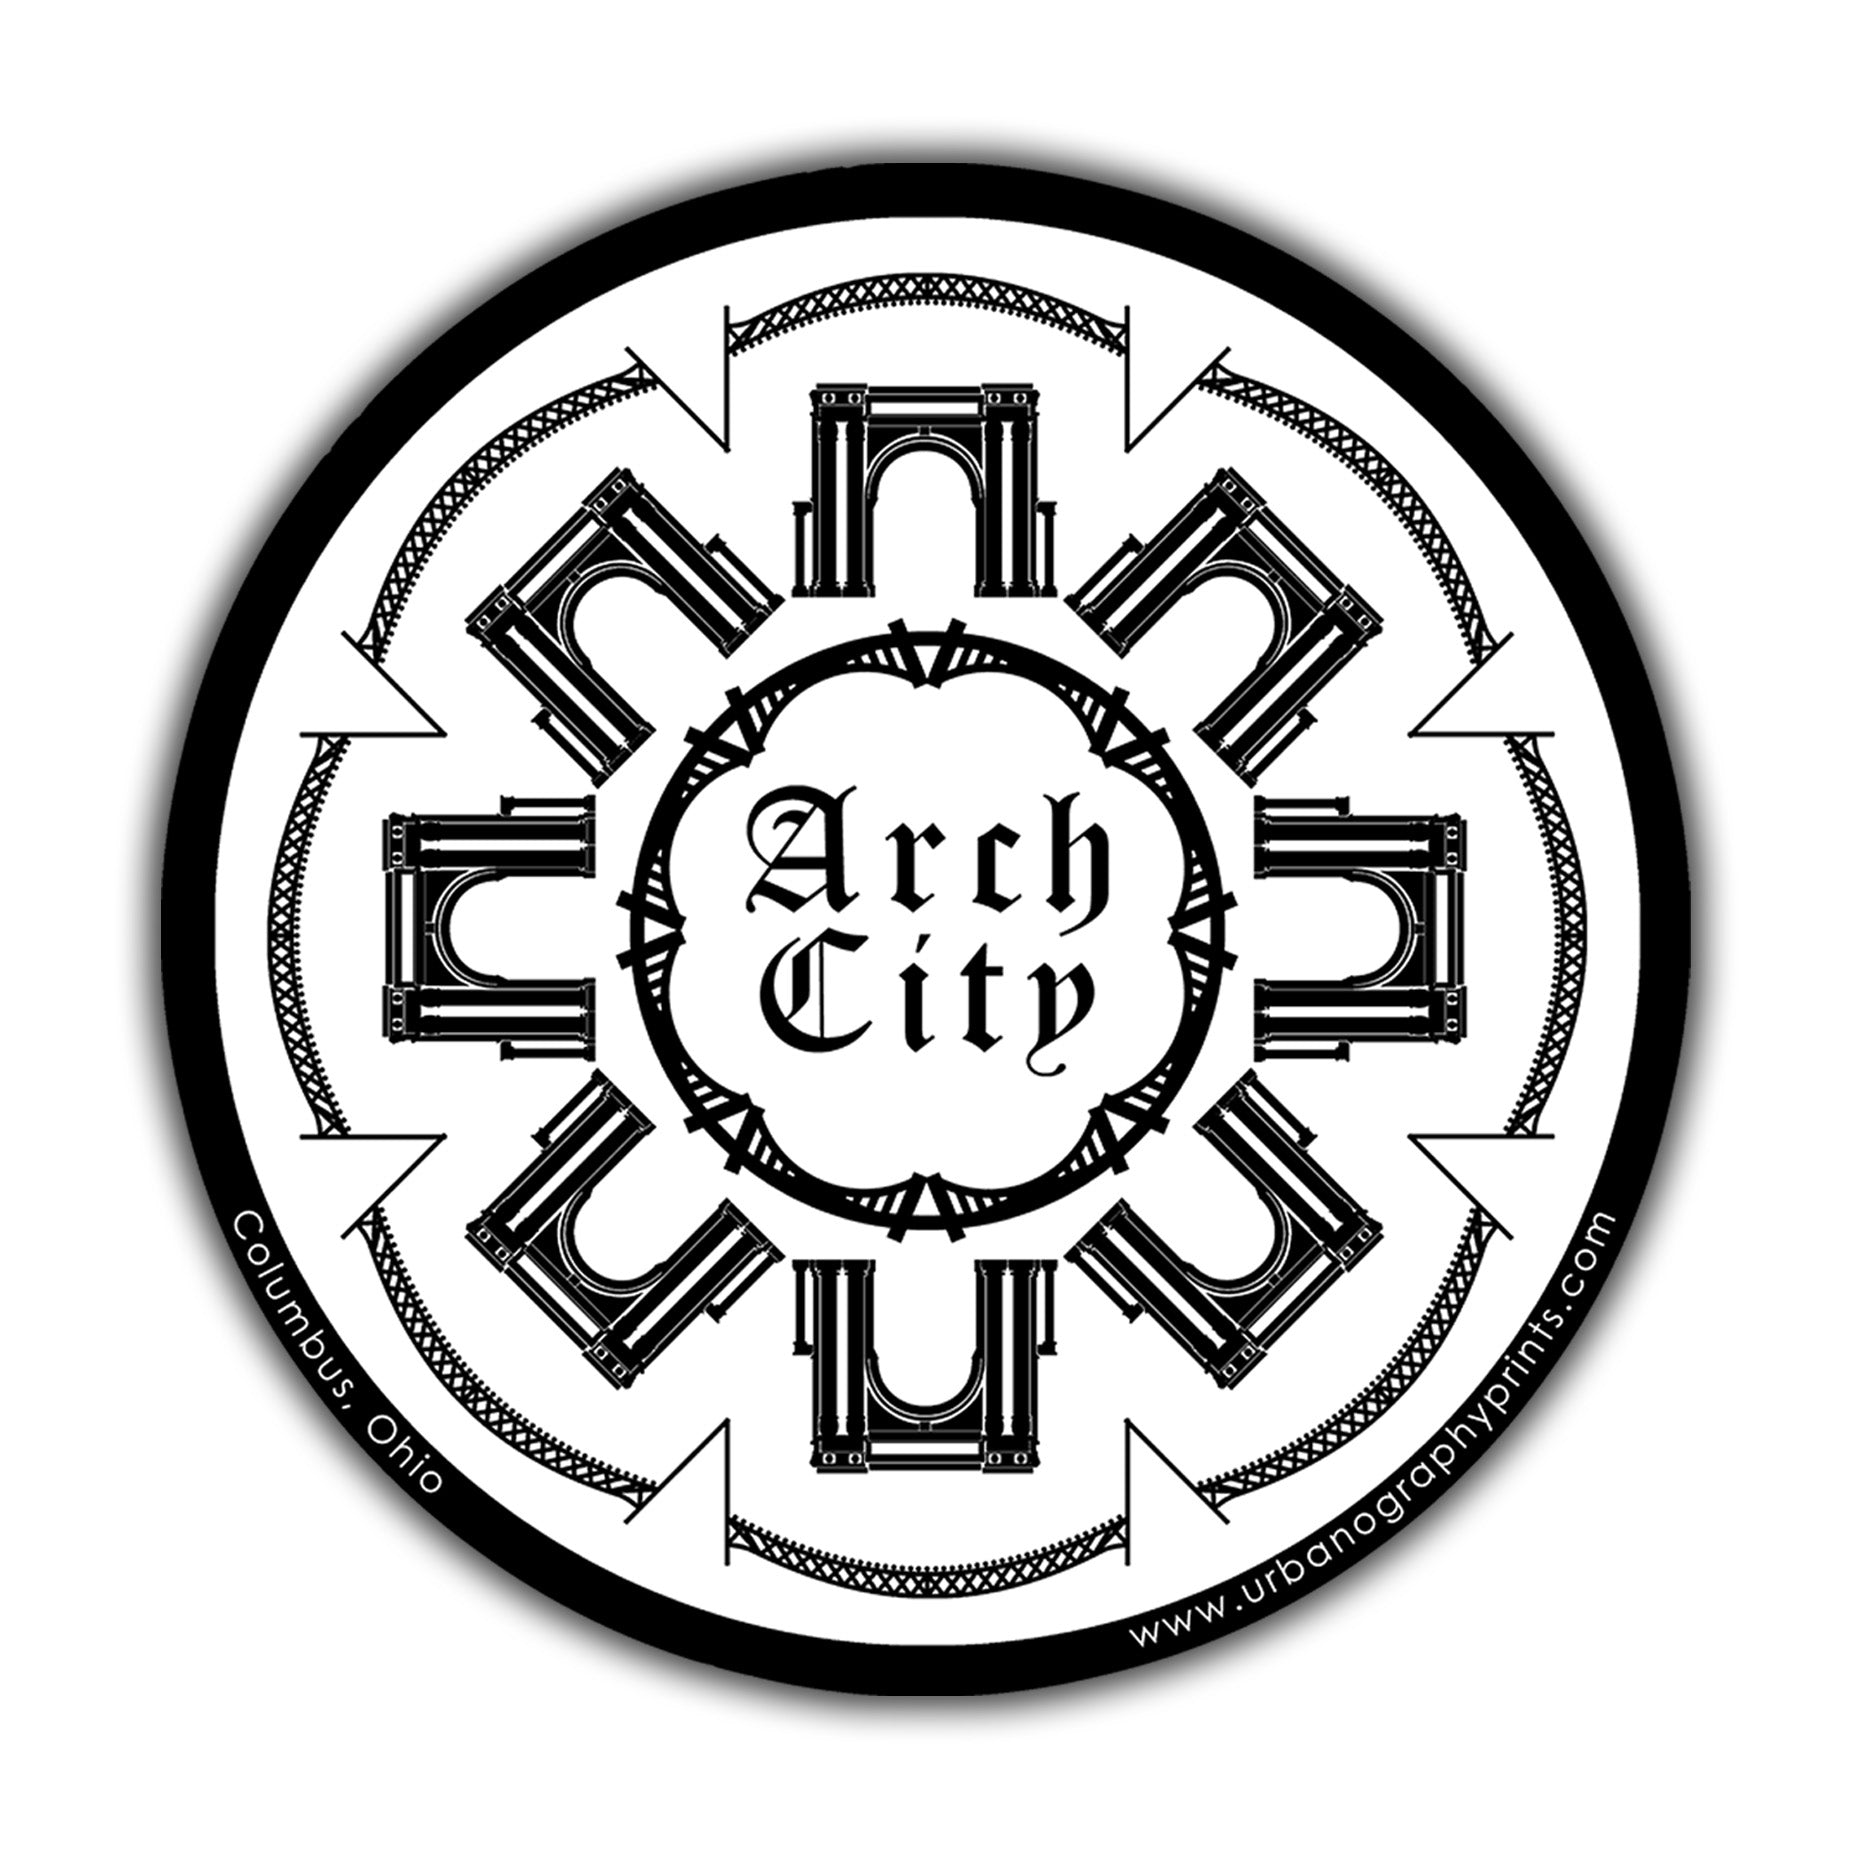 Arch City Sticker